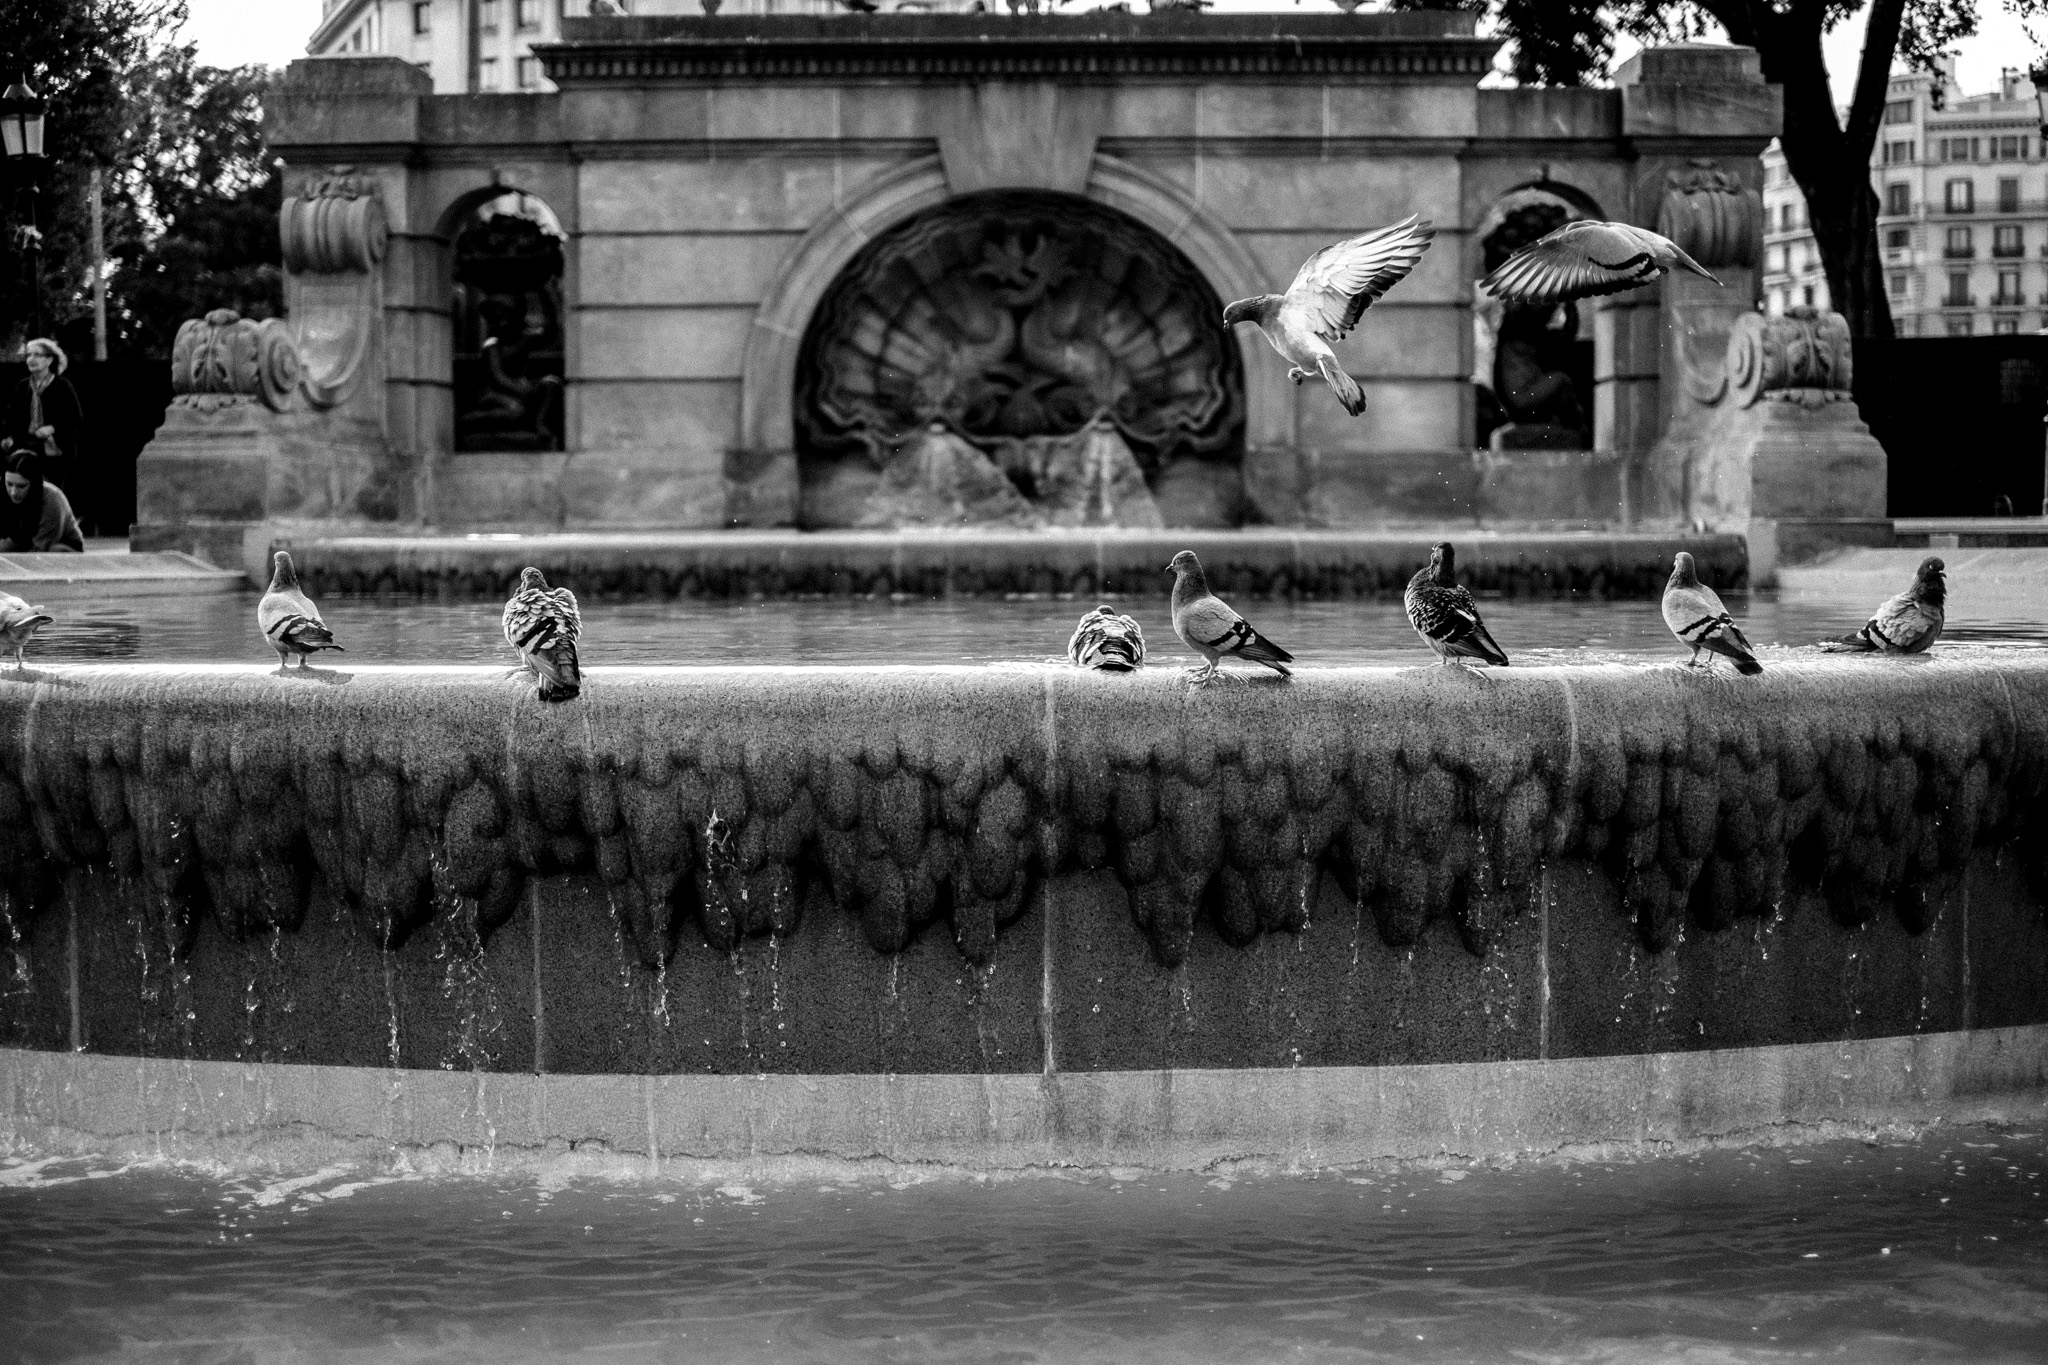 Probably a usual hangout for Barcelona's many pigeons…